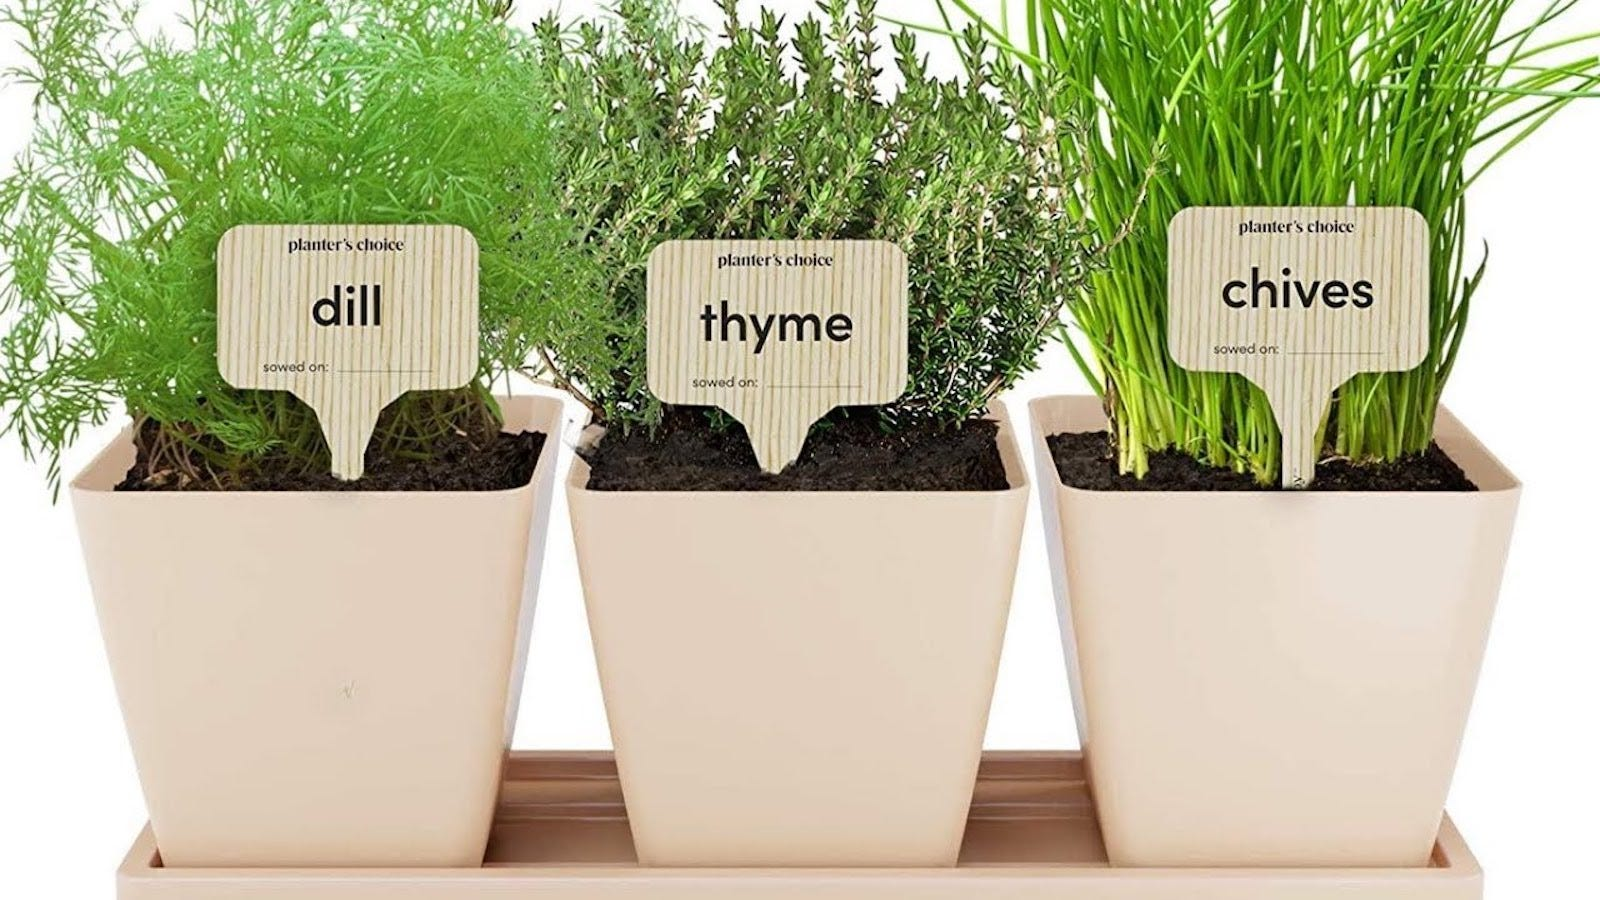 """Three white squared pots with green herbs growing. Each pot has a label stake: one reads """"dill,"""" the next """"thyme,"""" the last """"chives"""""""